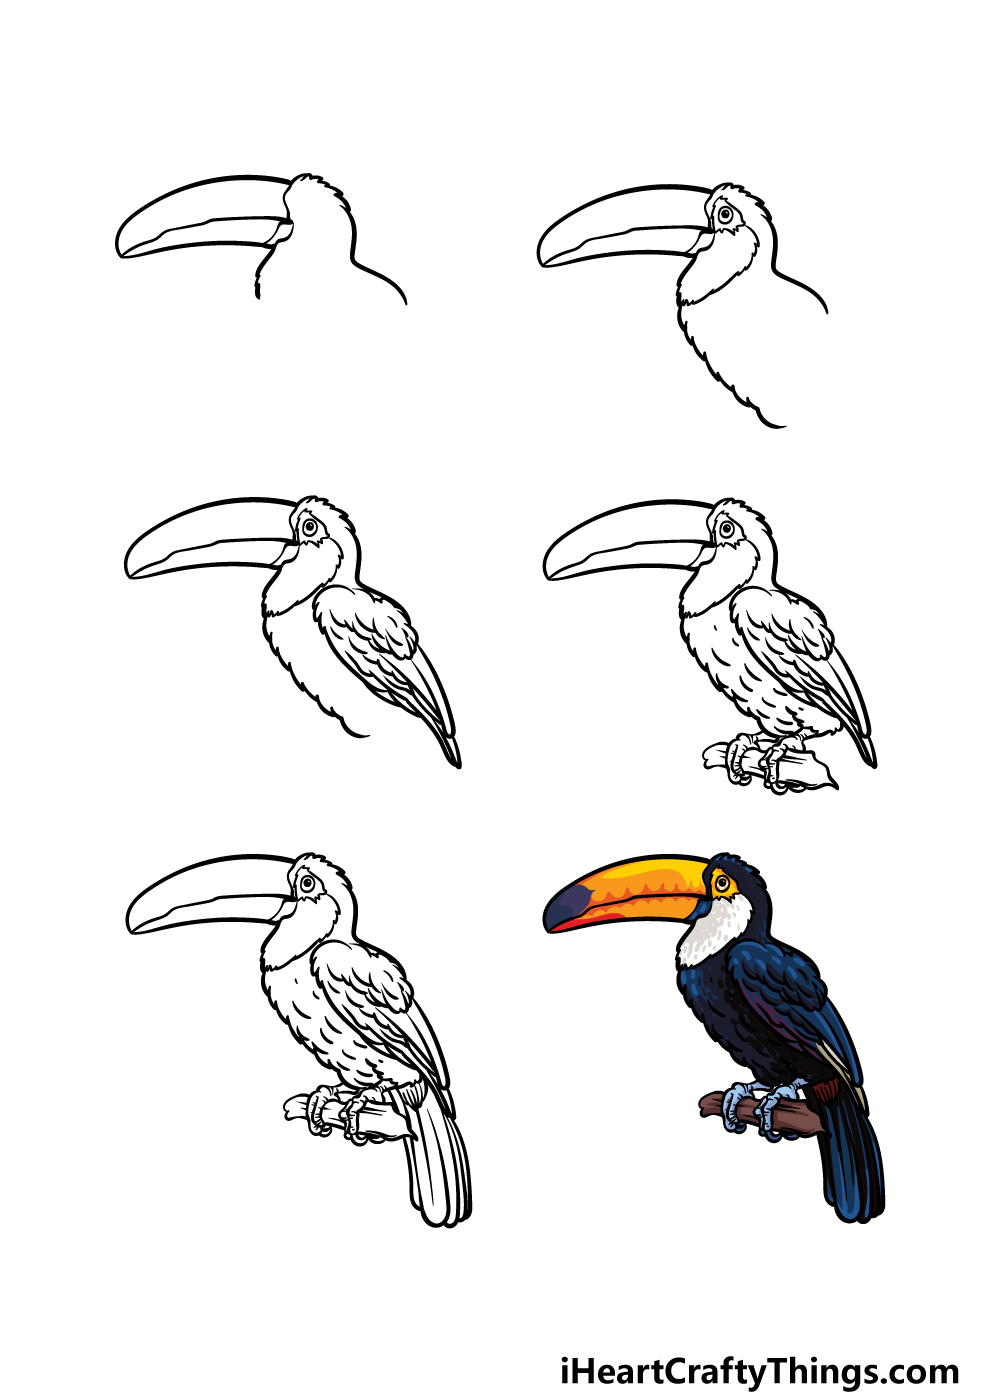 how to draw a toucan in 6 steps